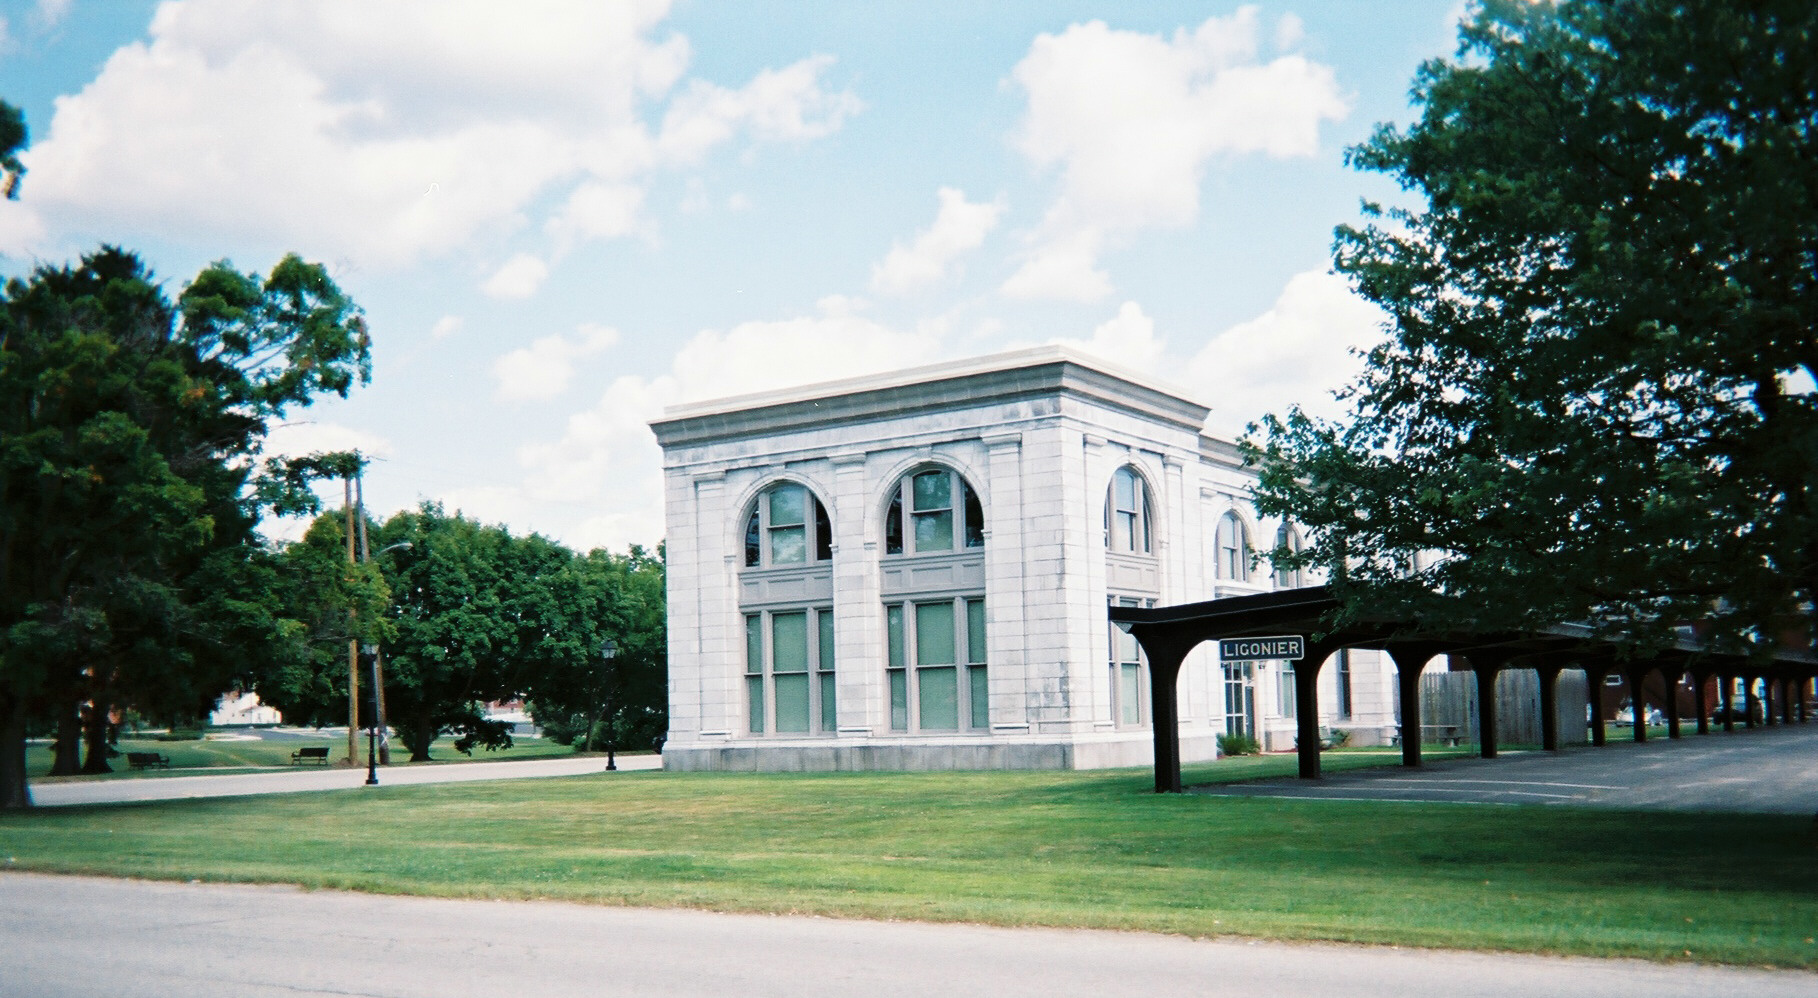 """The Liggie's"" former Ligonier depot and headquarters, now used as offices by the local school district."